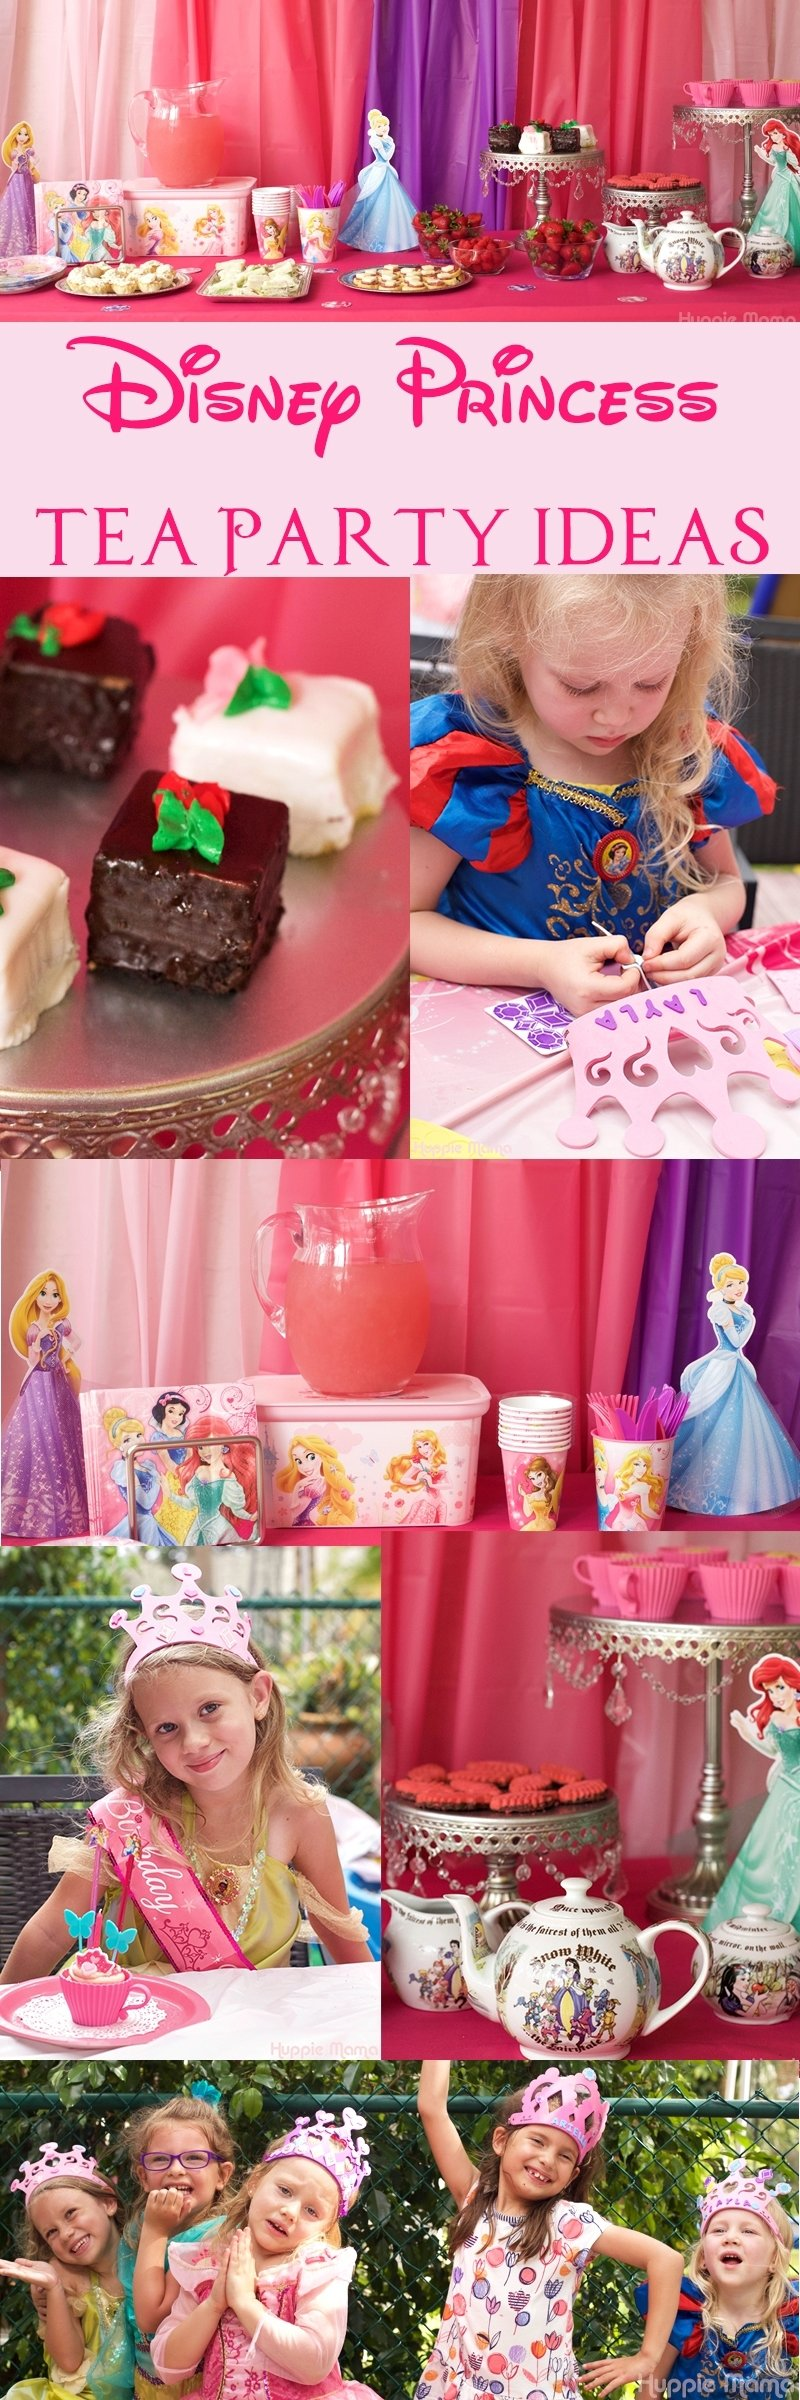 10 Nice Princess Tea Party Food Ideas disney princess tea party ideas our potluck family